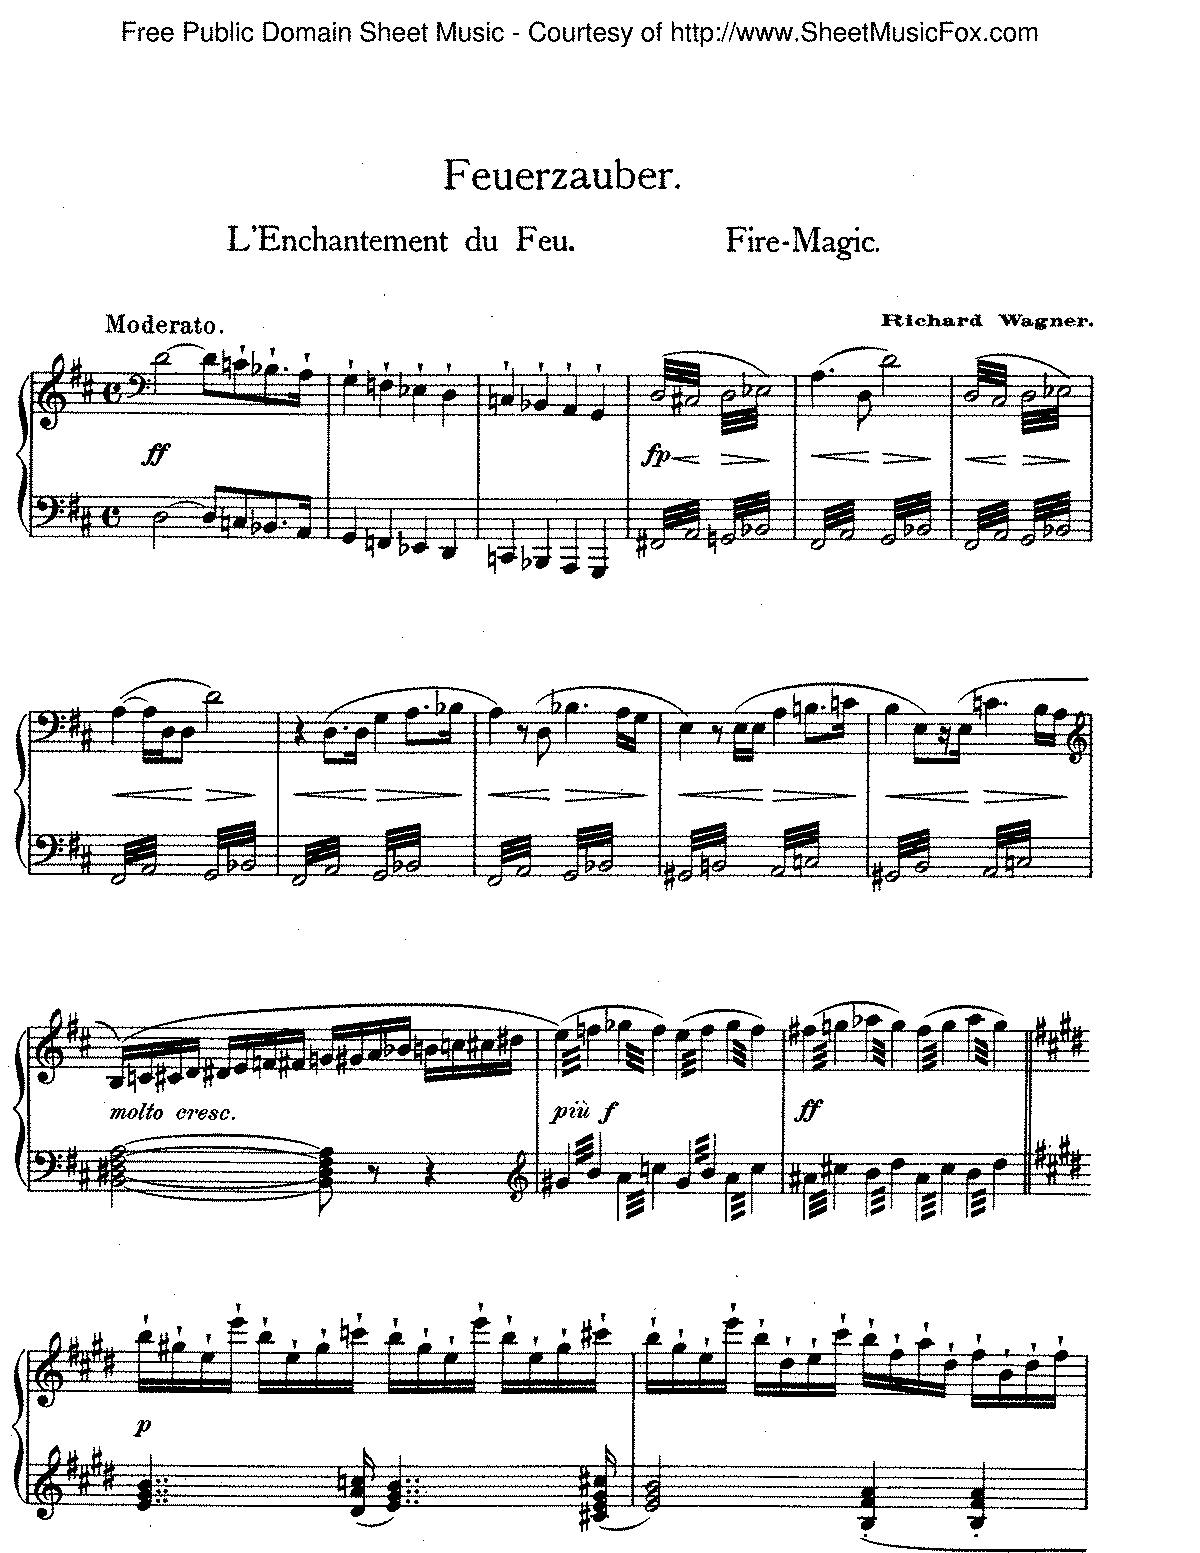 Wagner - Fire-Magic.pdf